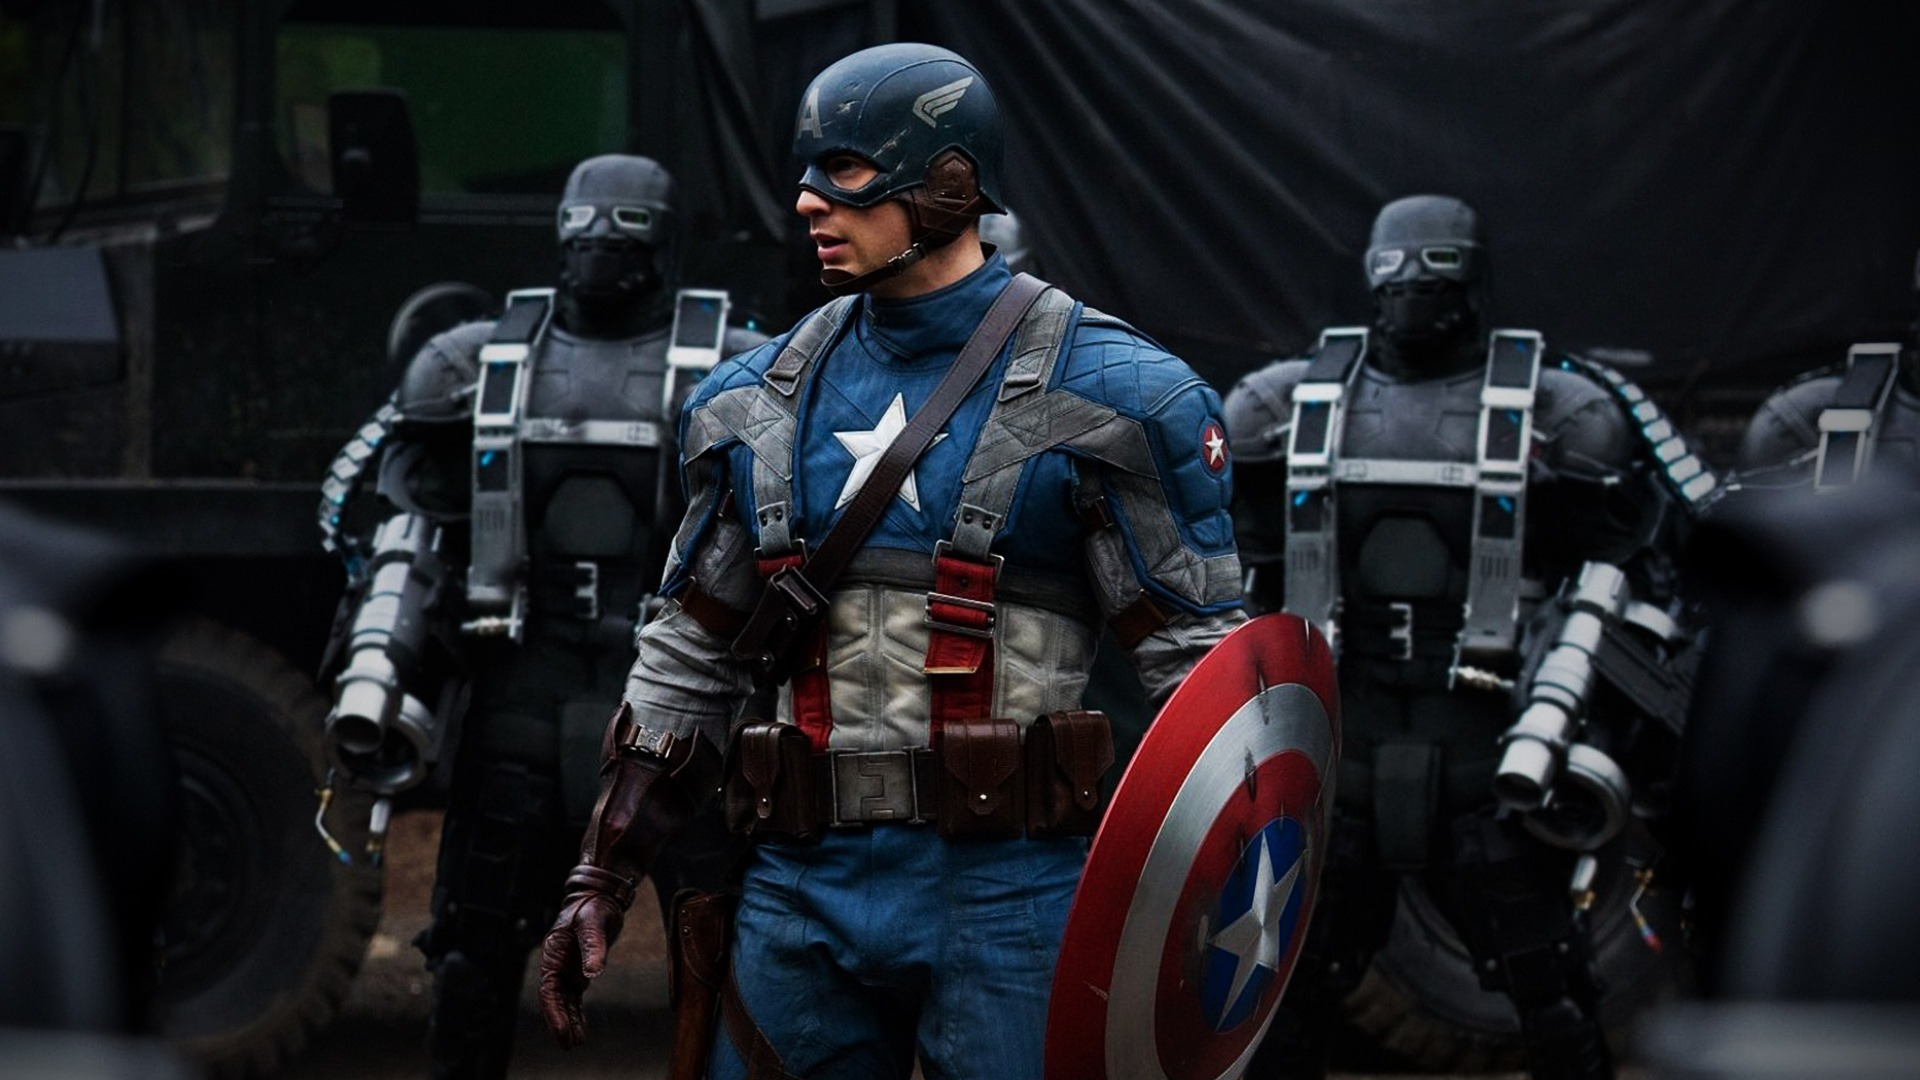 48+ Captain America HD Wallpapers 1080p on WallpaperSafari